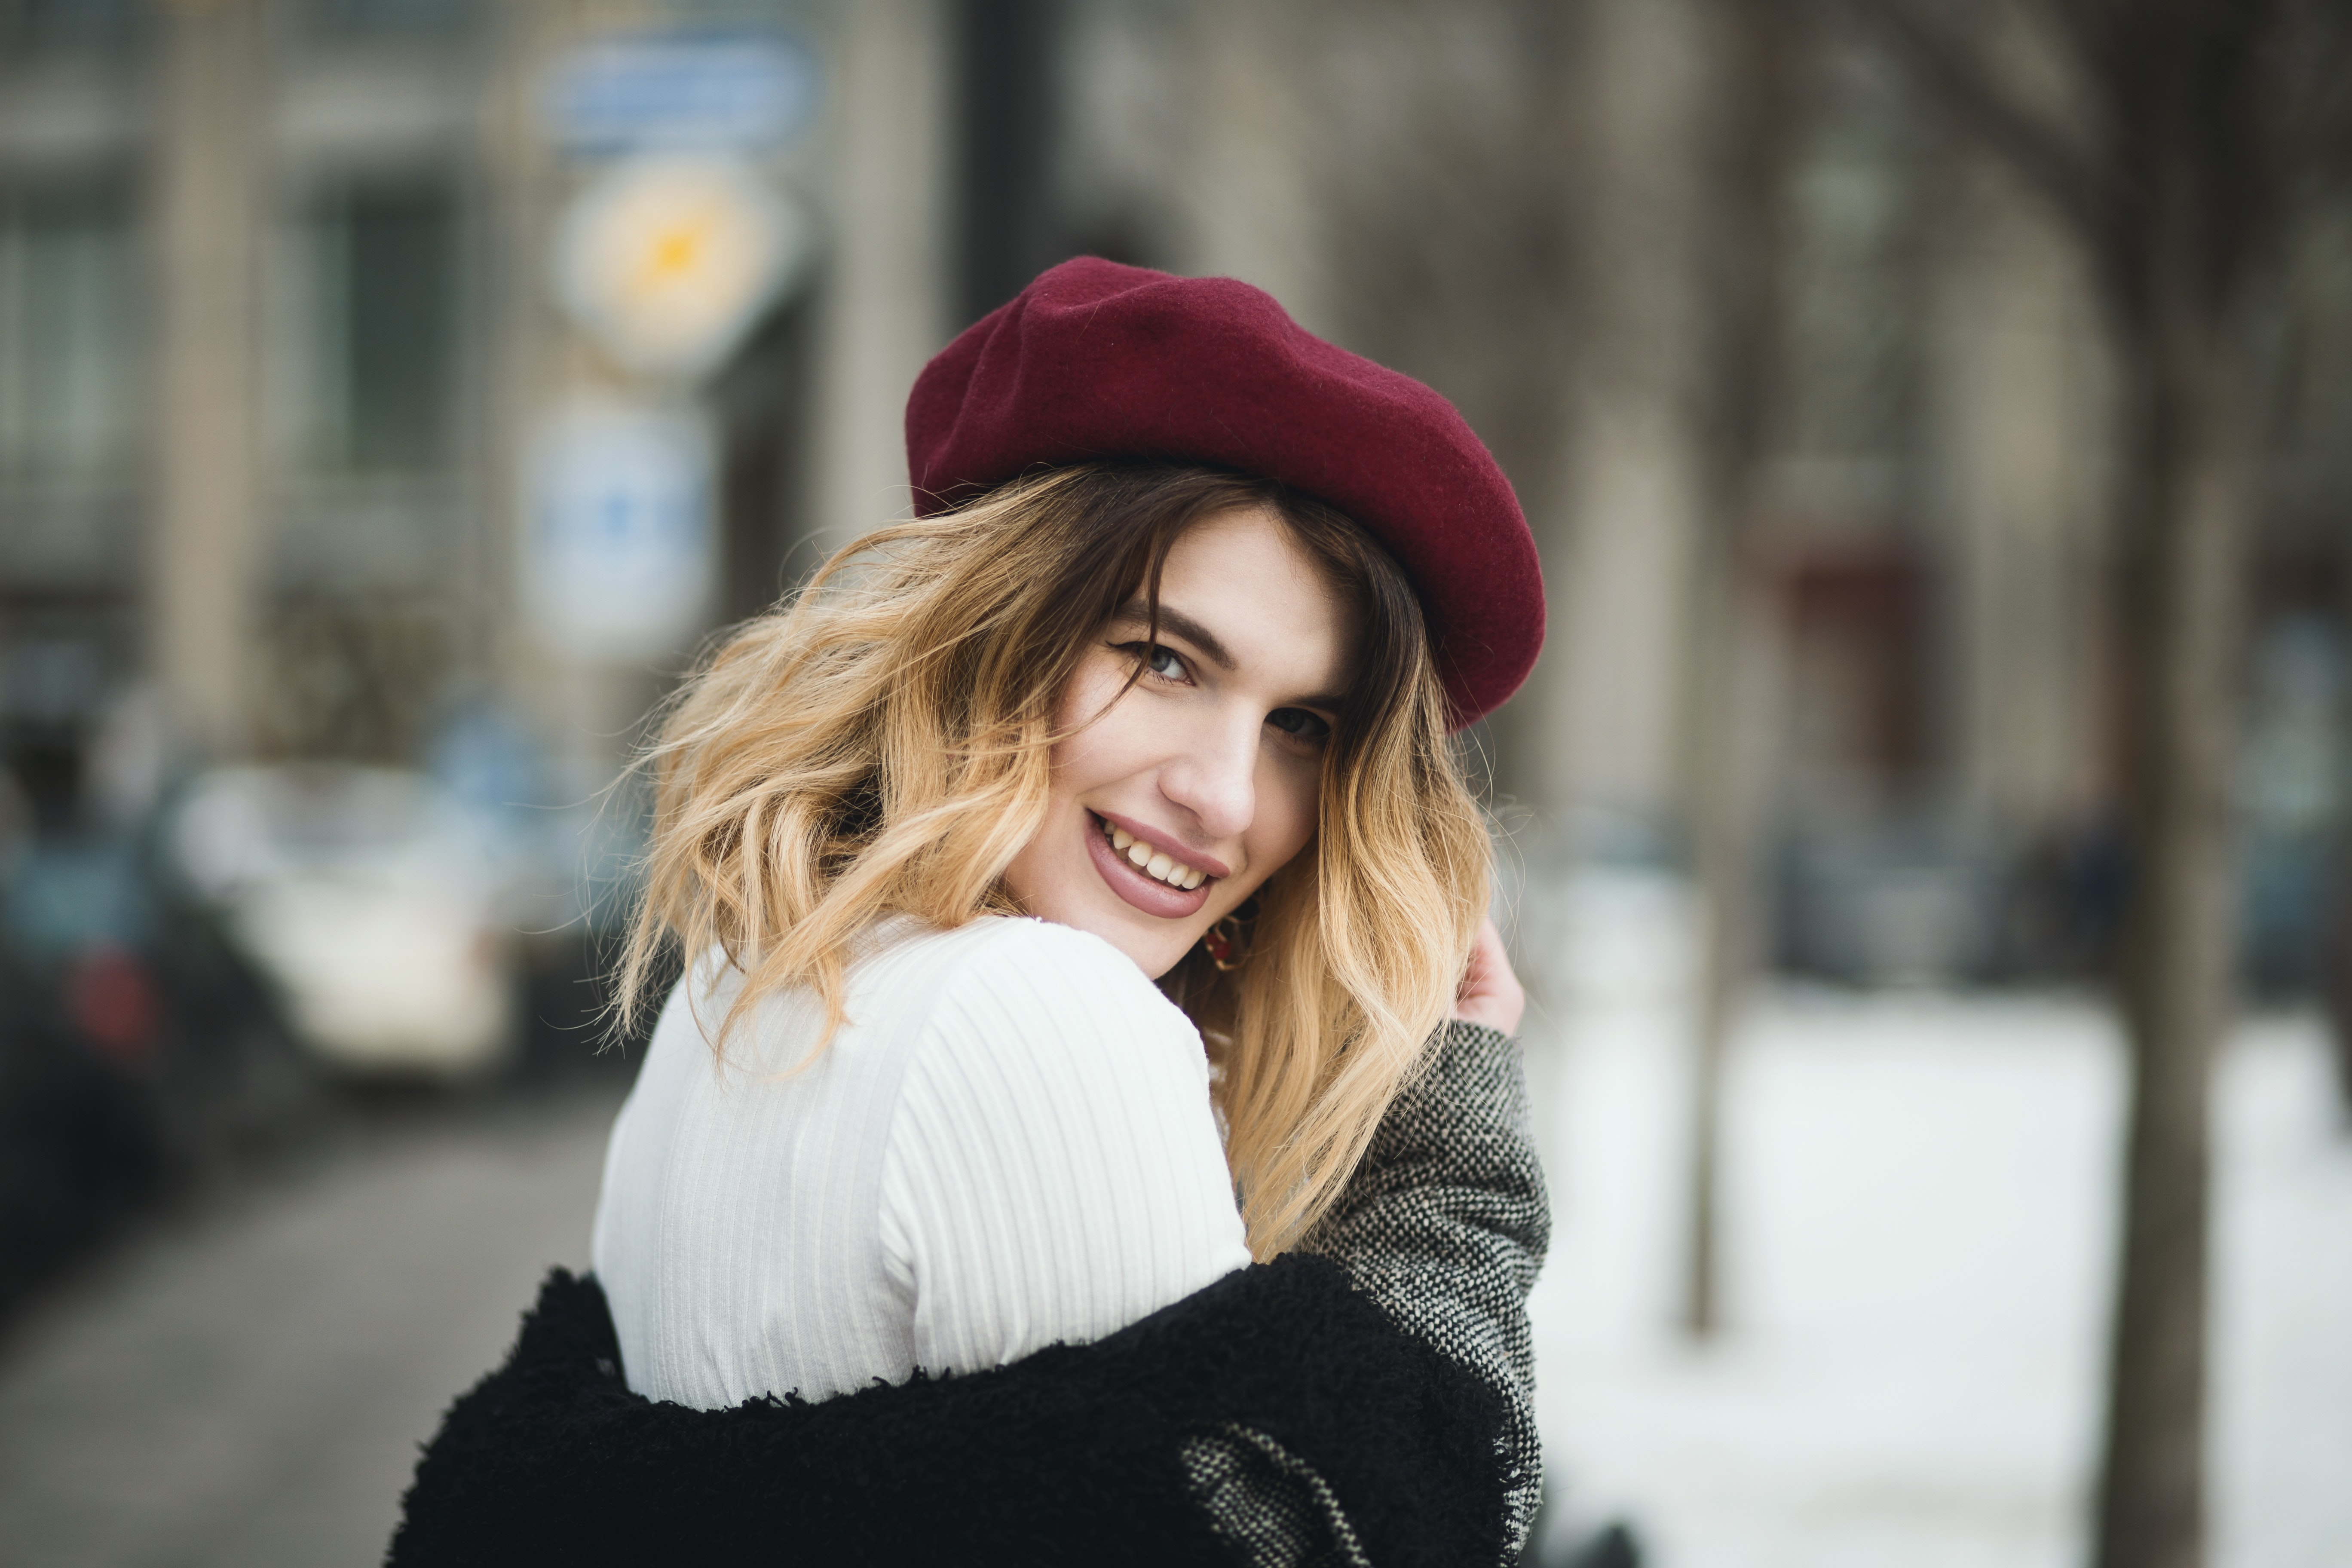 Selective focus photography of a smiling woman wearing a red hat